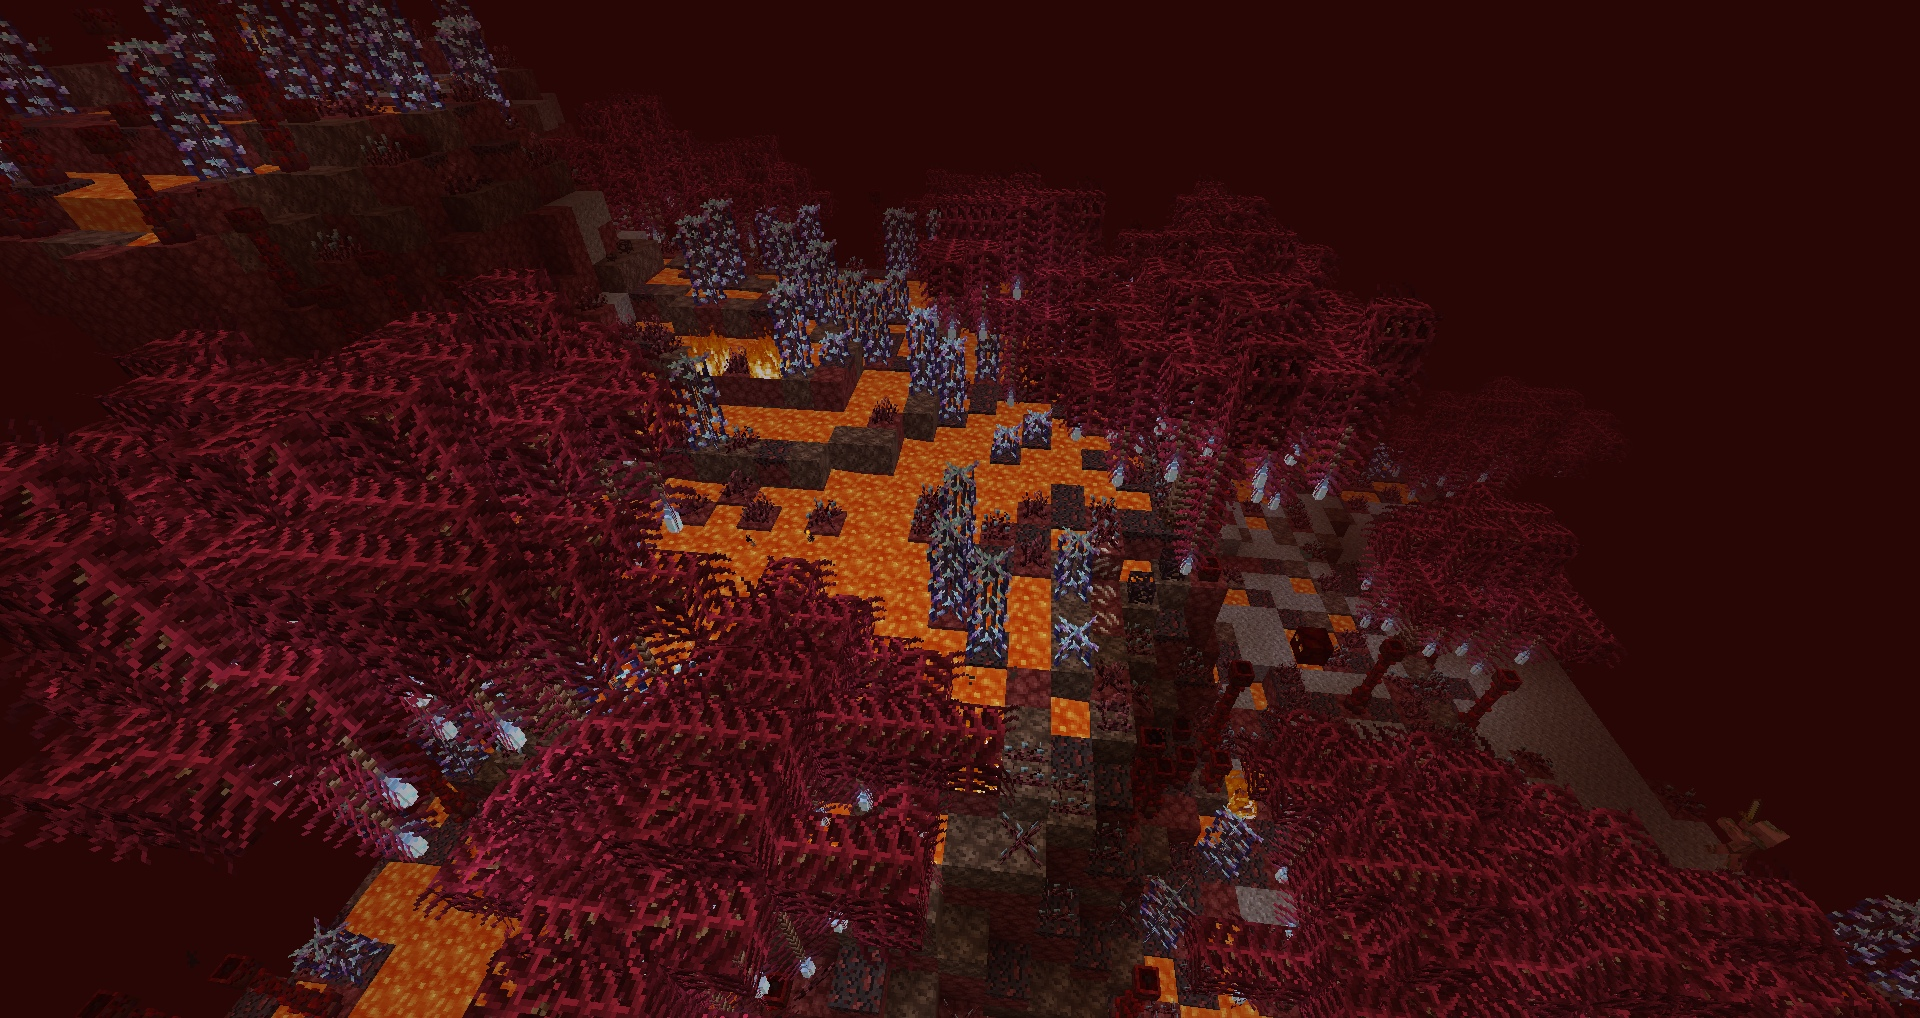 Terraced Nether Swamp